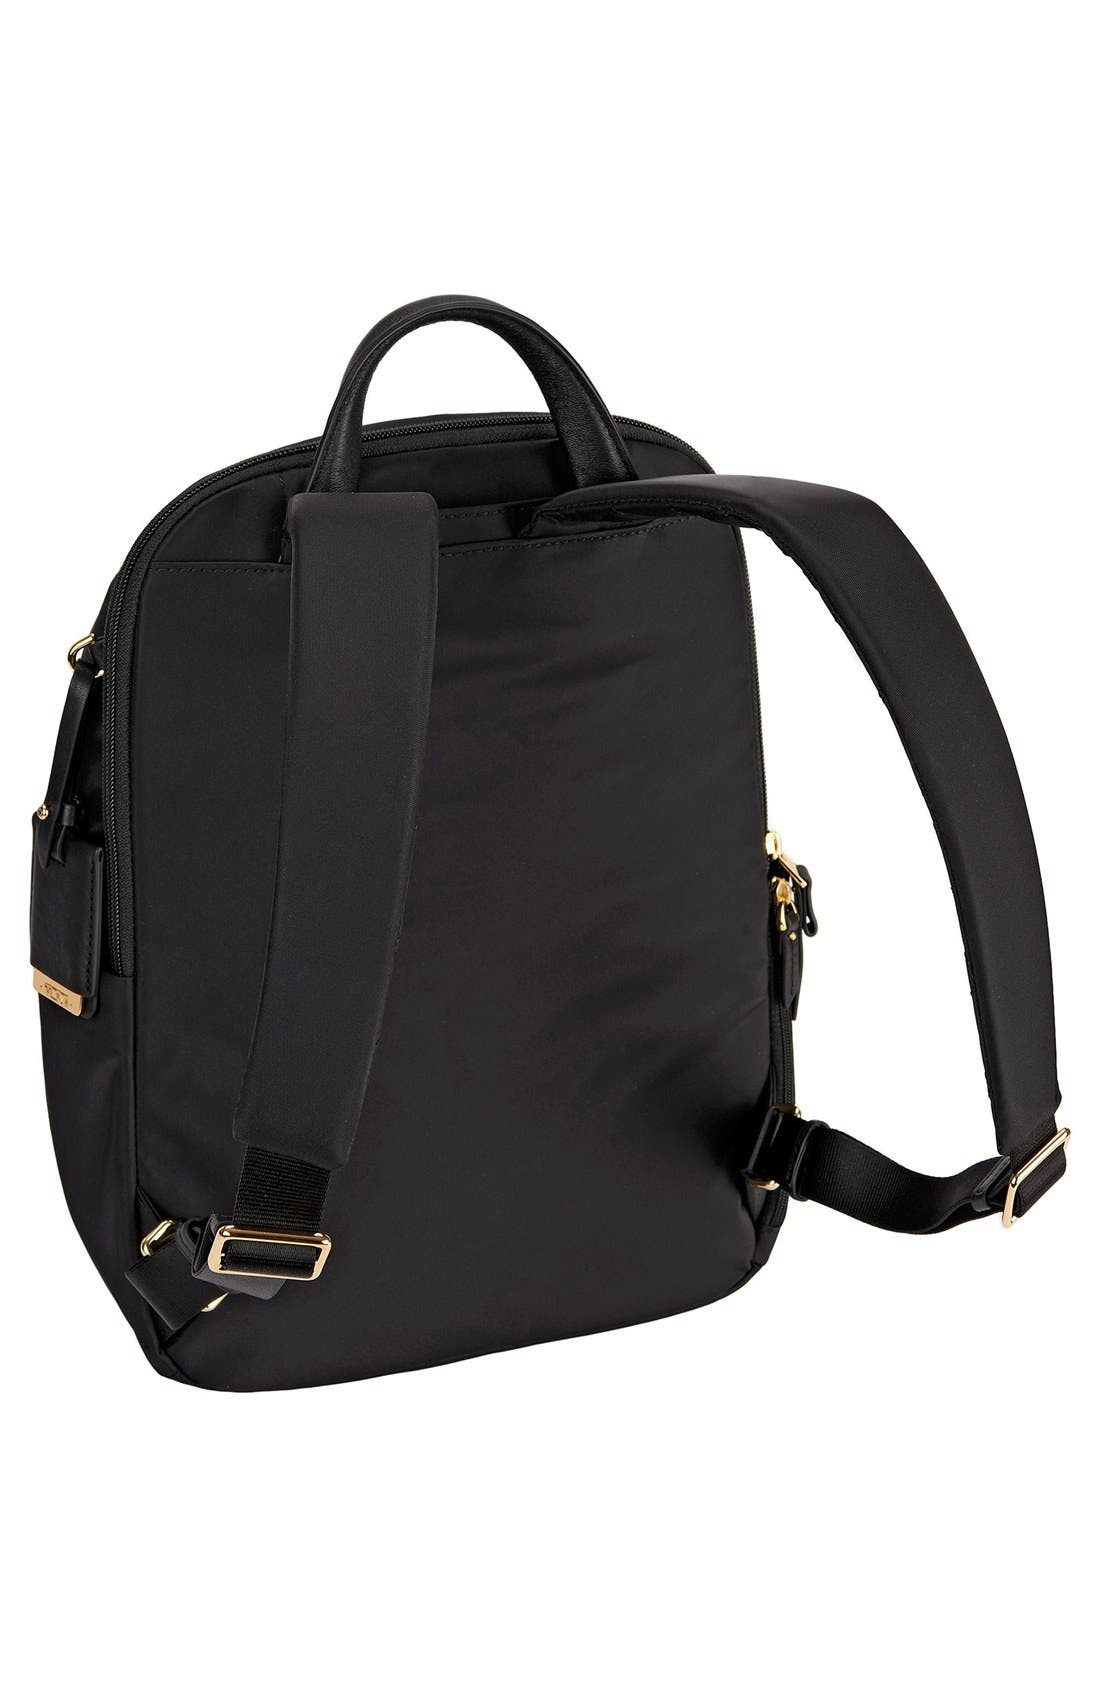 TUMI,                             Voyageur - Small Daniella Backpack,                             Alternate thumbnail 3, color,                             001